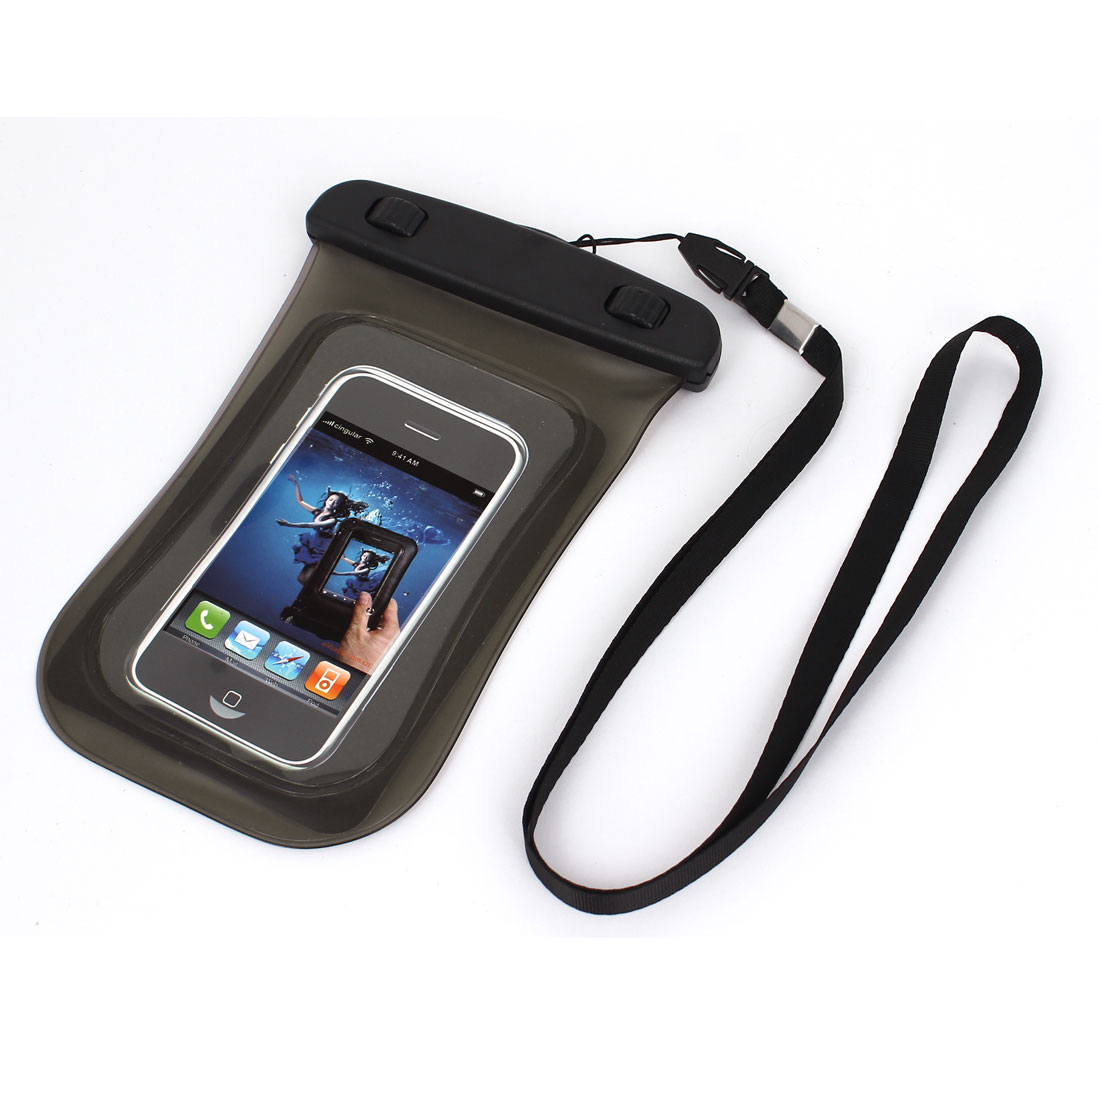 "Universal Waterproof Case Dry Bag Protective Cover Pouch Gray for 4"" Cell Phone"